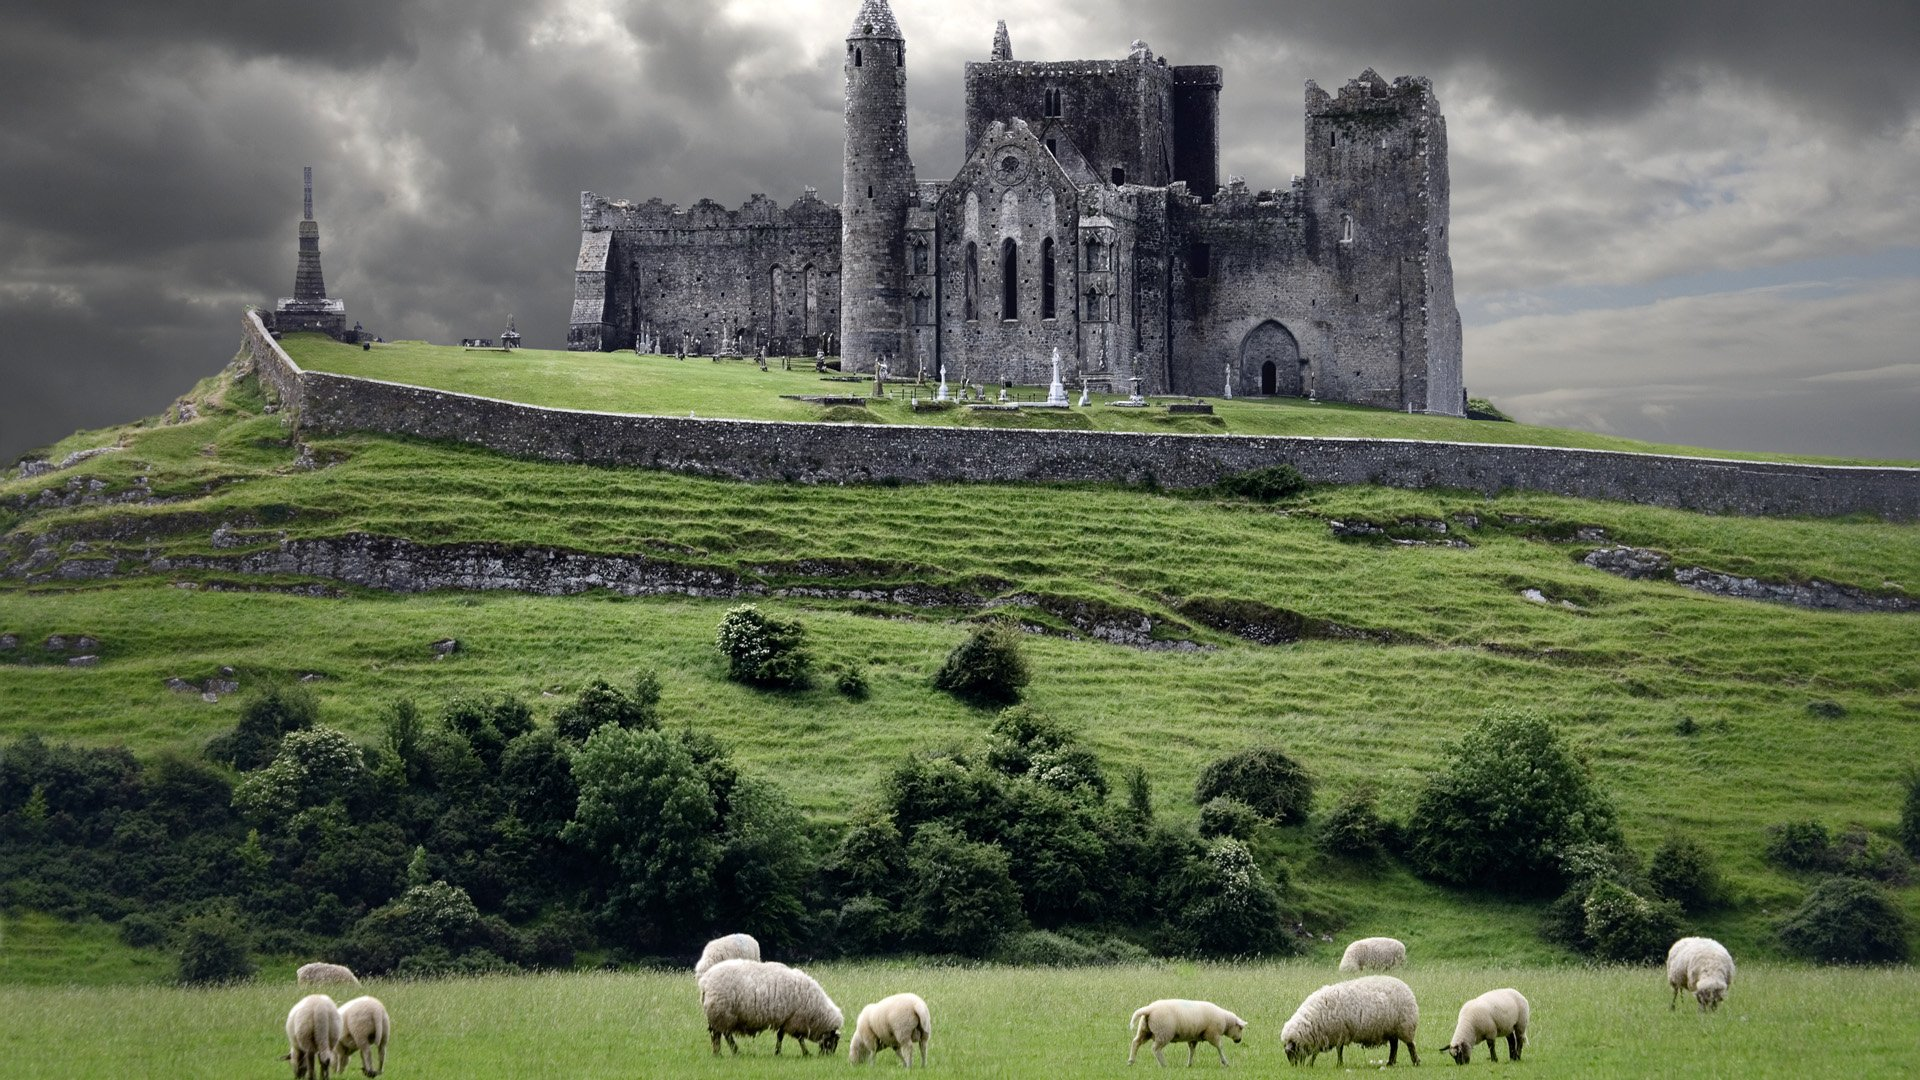 Halifax to Dublin, Ireland - $600 roundtrip including taxes | Summer 2014